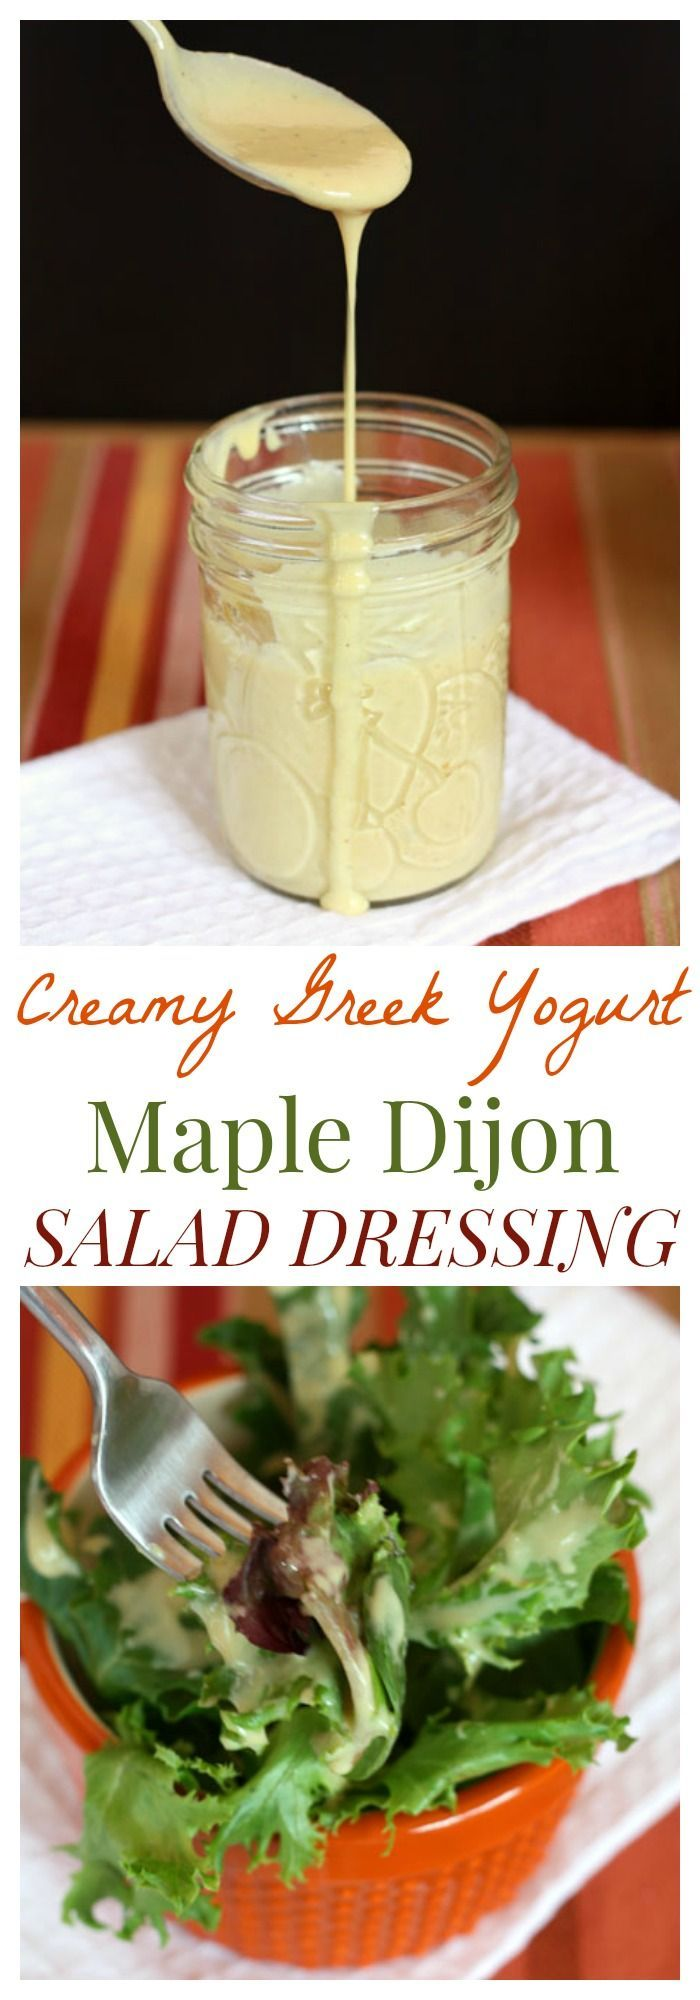 Healthy salad dressing recipes yogurt